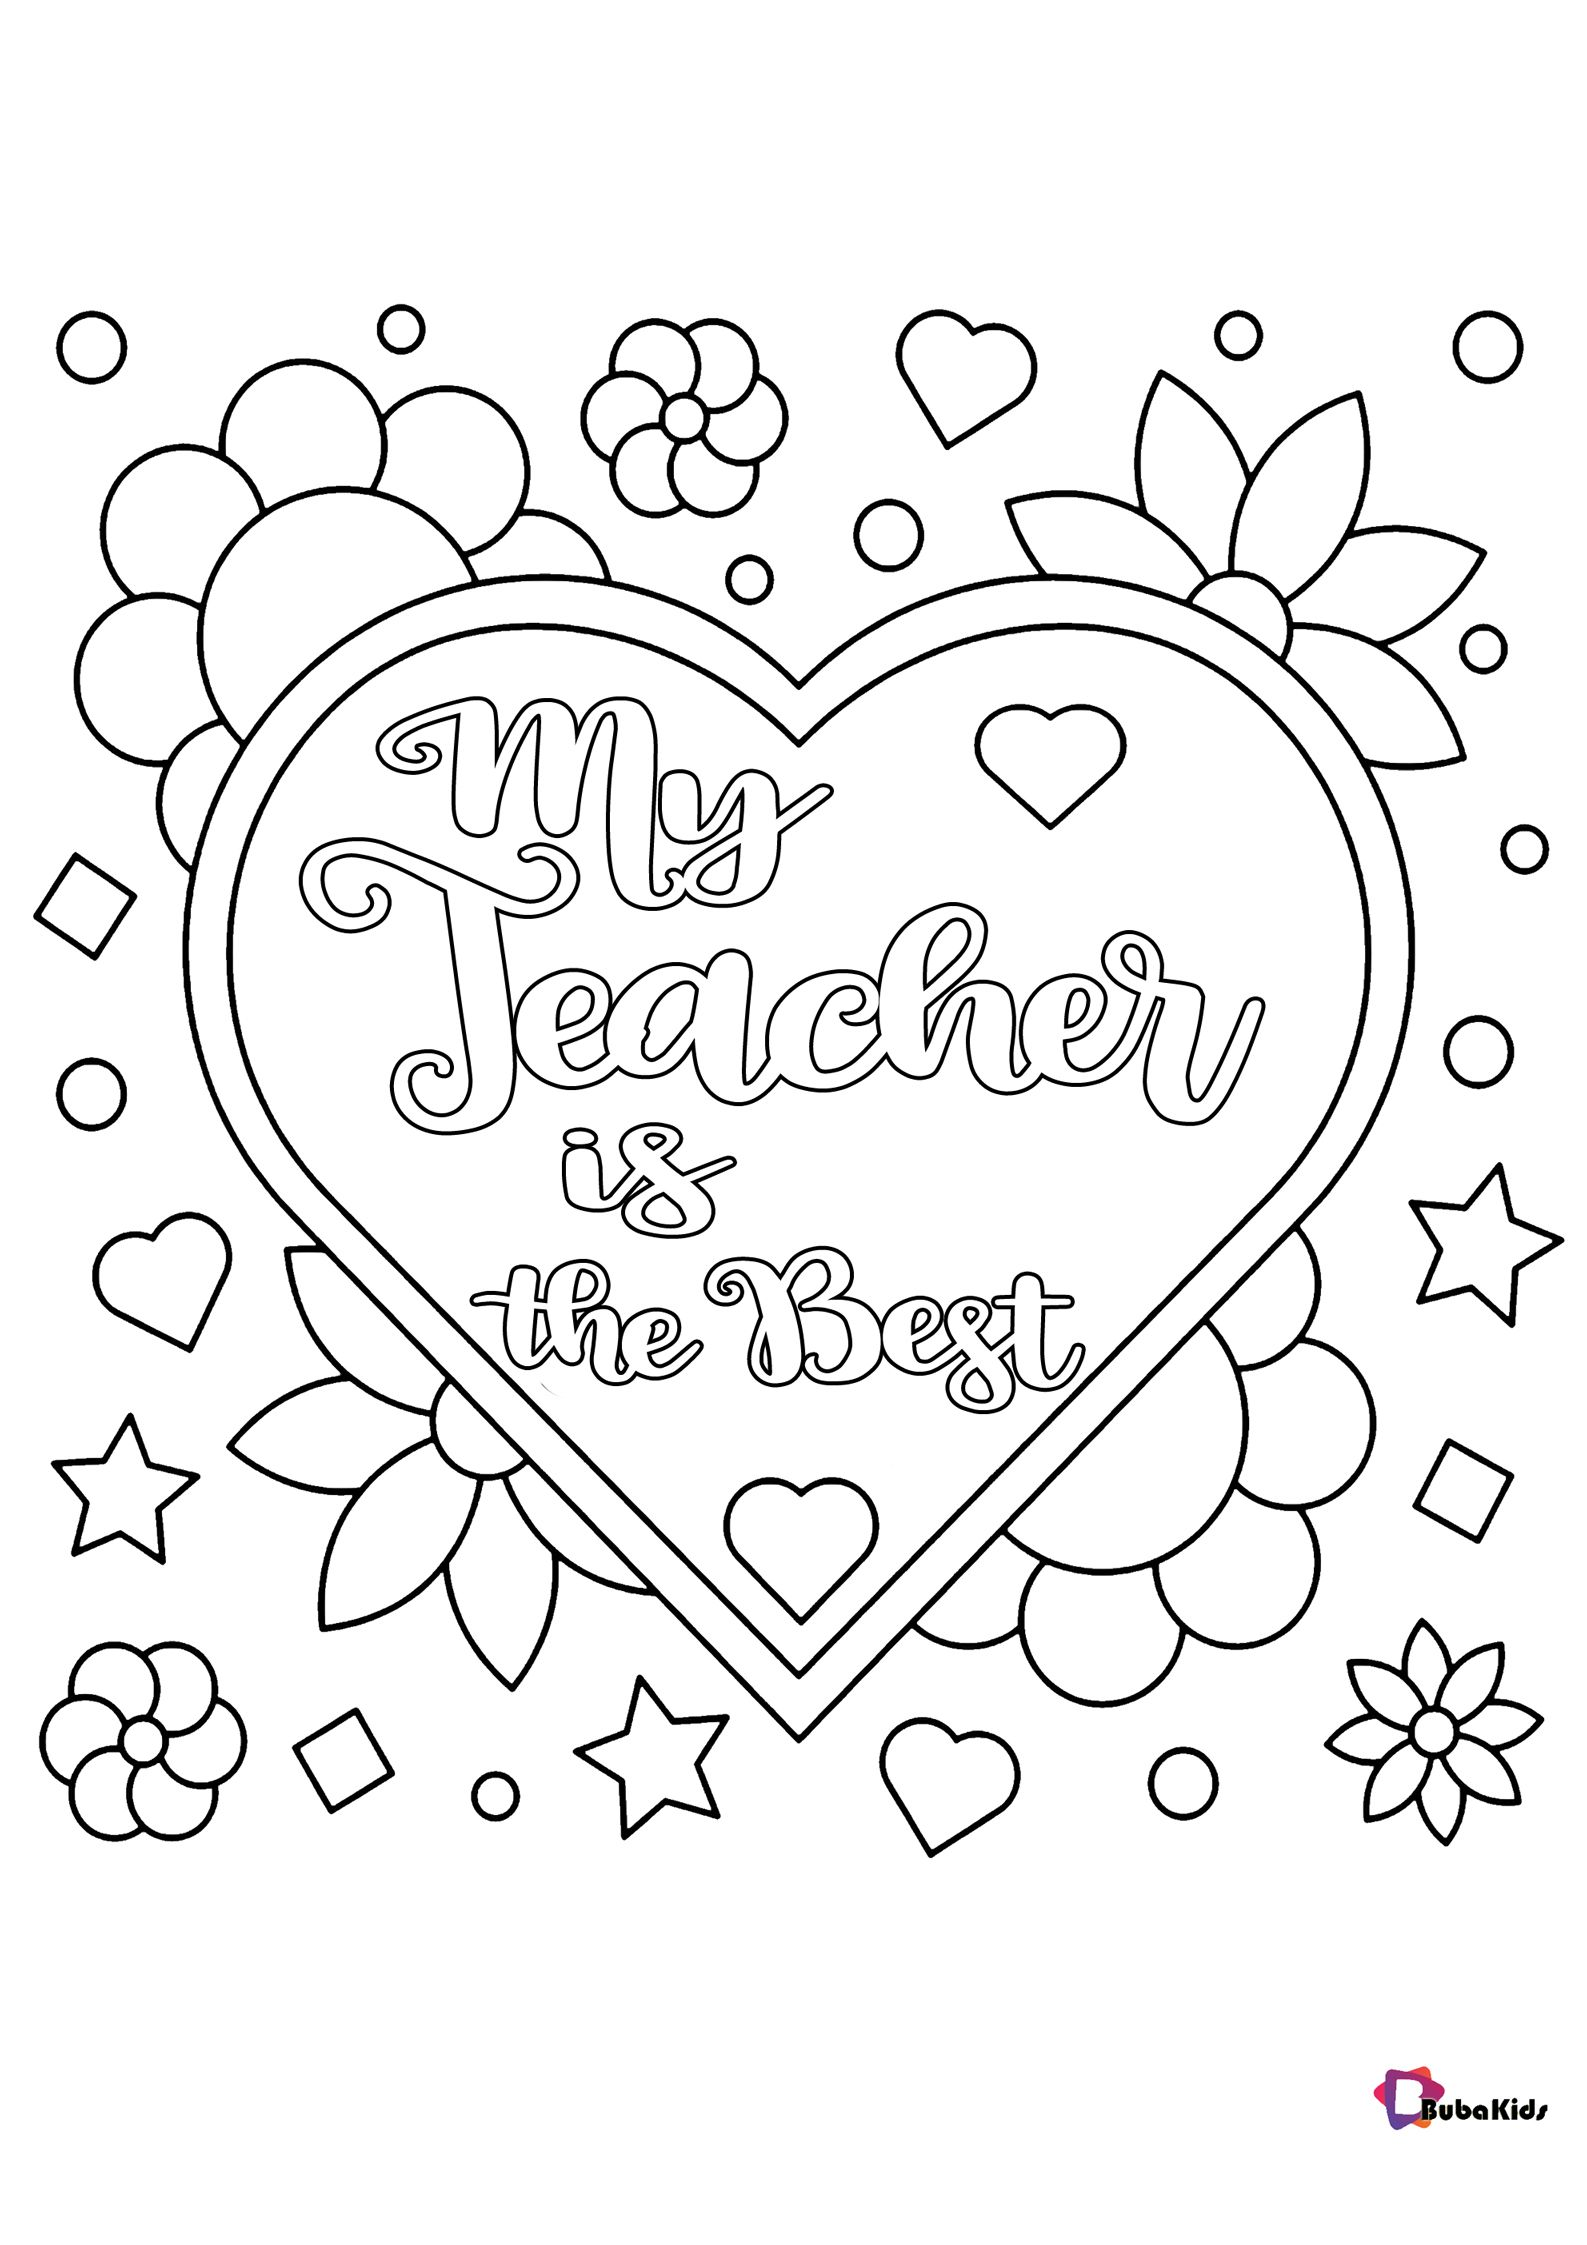 Free Download To Print Teacher Appreciation Day Coloring Pages My Teacher Is The Bes In 2020 Mothers Day Coloring Pages Valentine Coloring Pages Heart Coloring Pages